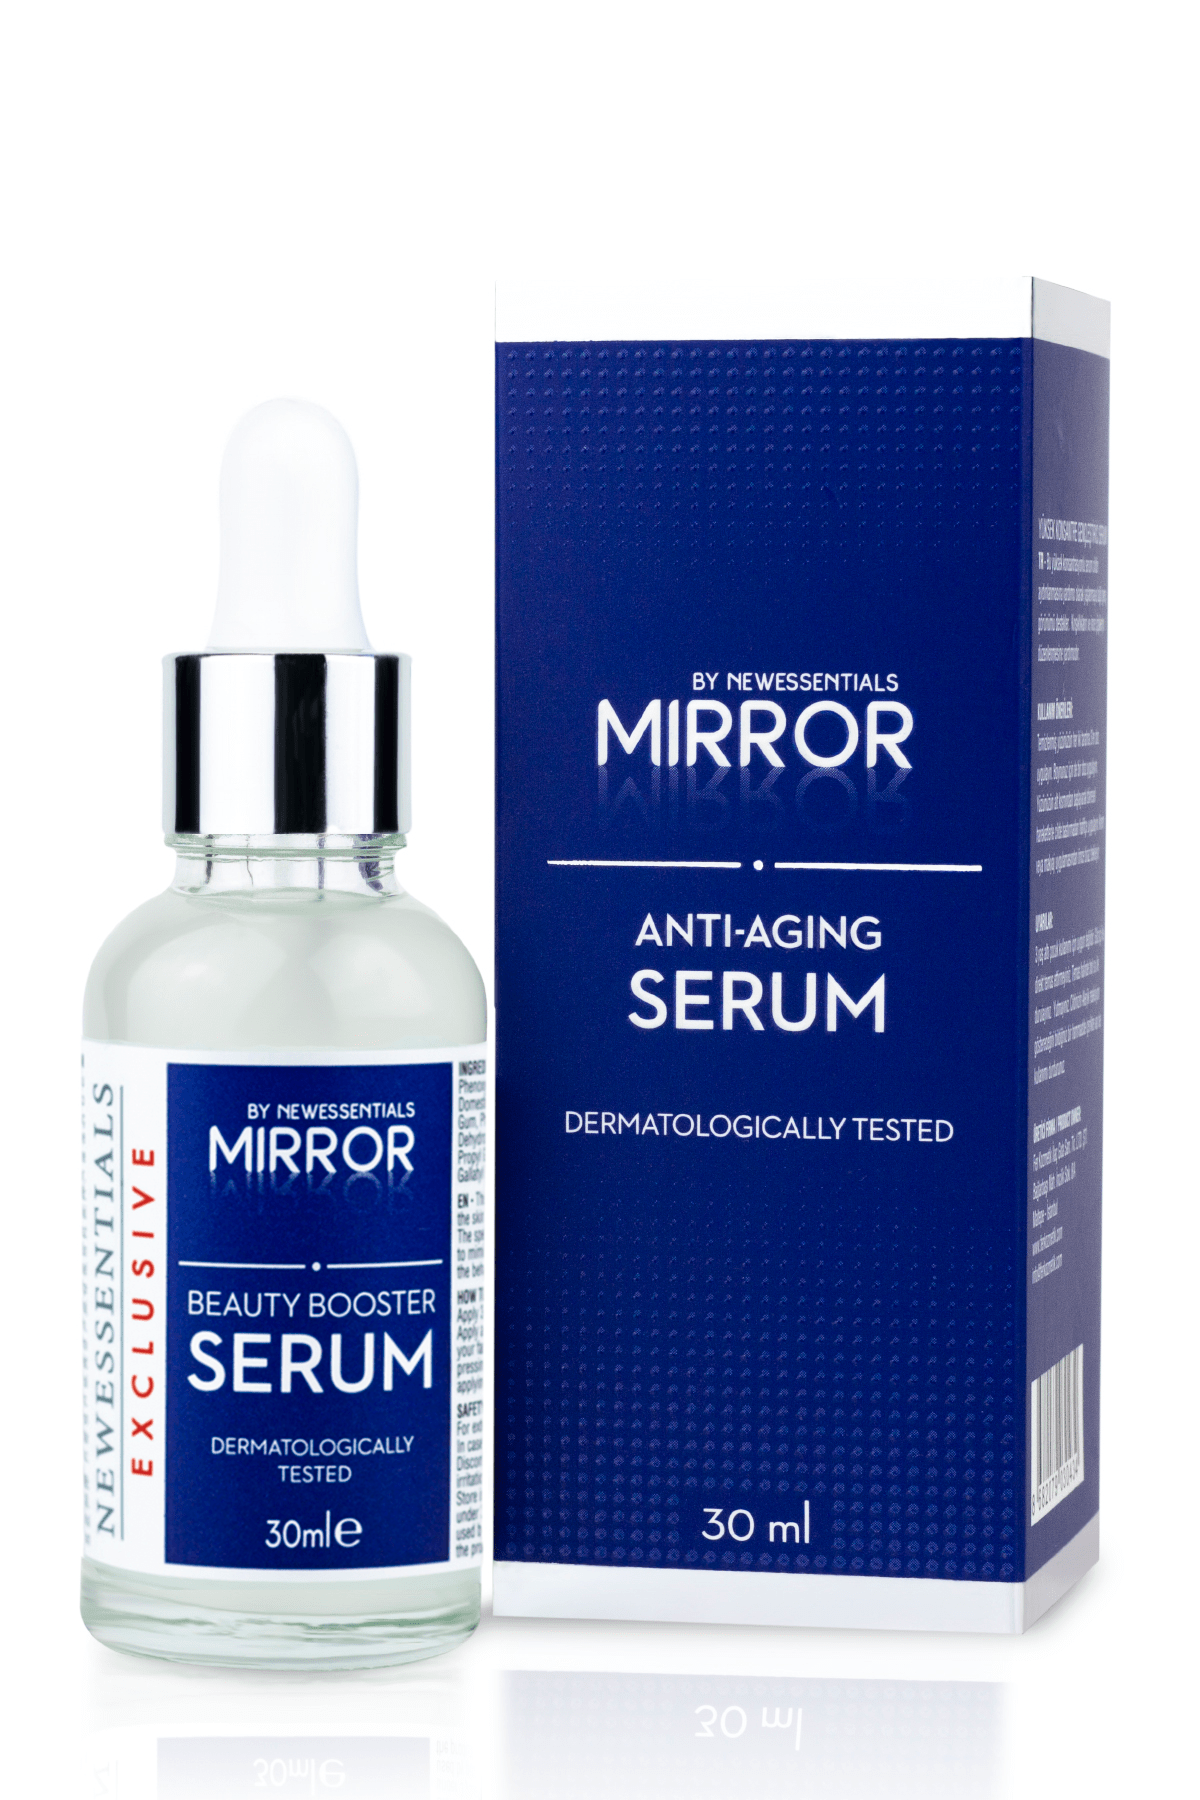 New Essentials Mirror Cilt Yenileyici Serum 30 ml 8682079030434